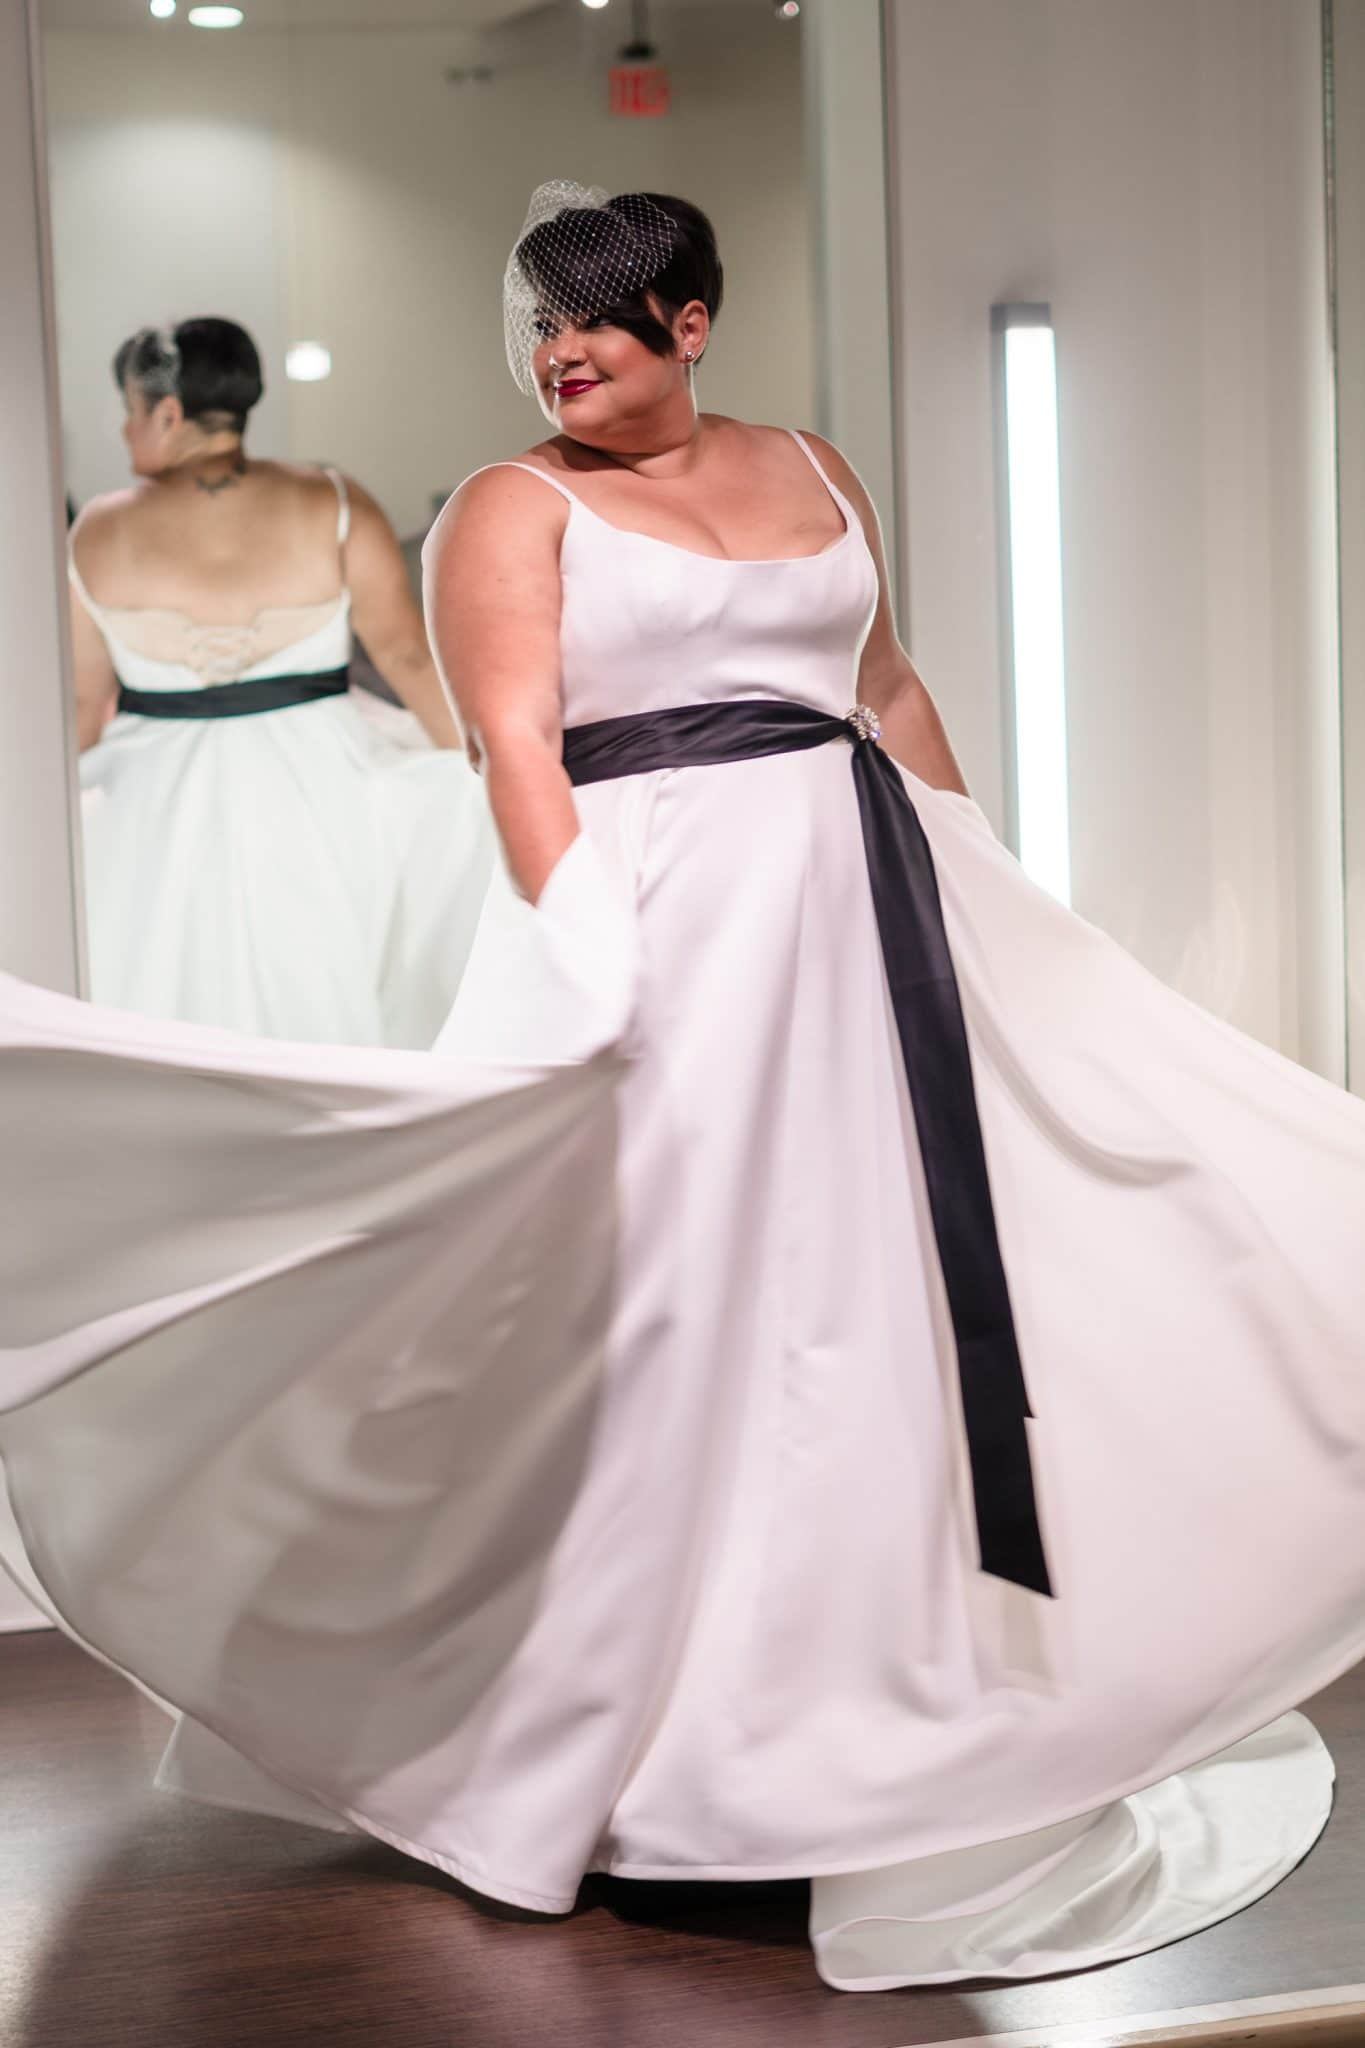 plus size bridal spinning in wedding dress with pockets at solutions bridal